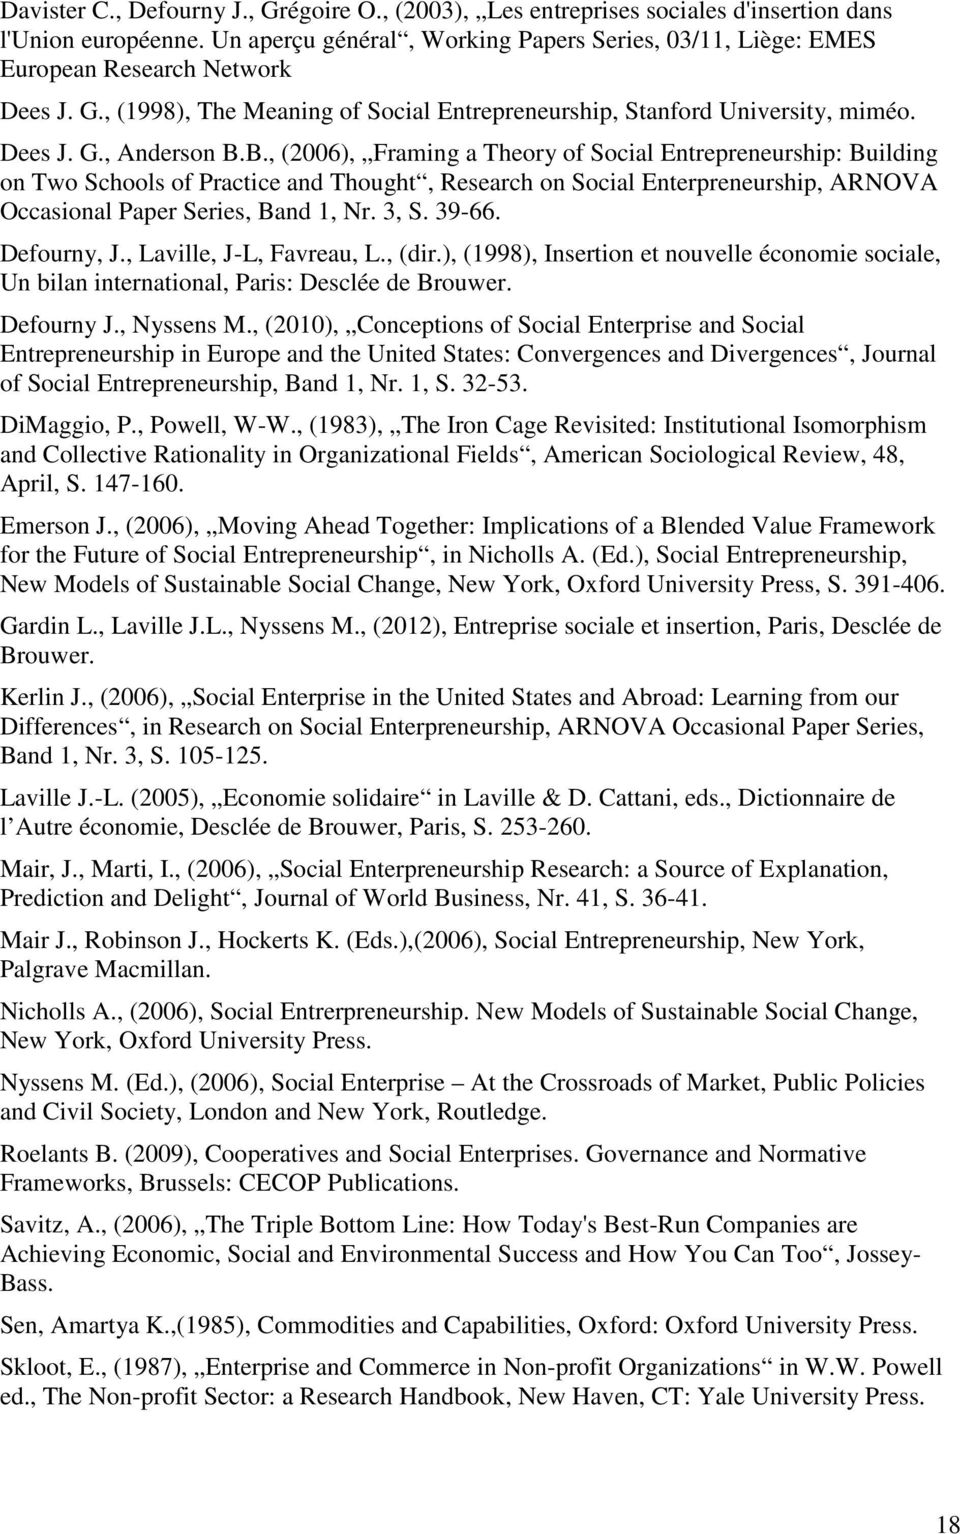 B., (2006), Framing a Theory of Social Entrepreneurship: Building on Two Schools of Practice and Thought, Research on Social Enterpreneurship, ARNOVA Occasional Paper Series, Band 1, Nr. 3, S. 39-66.